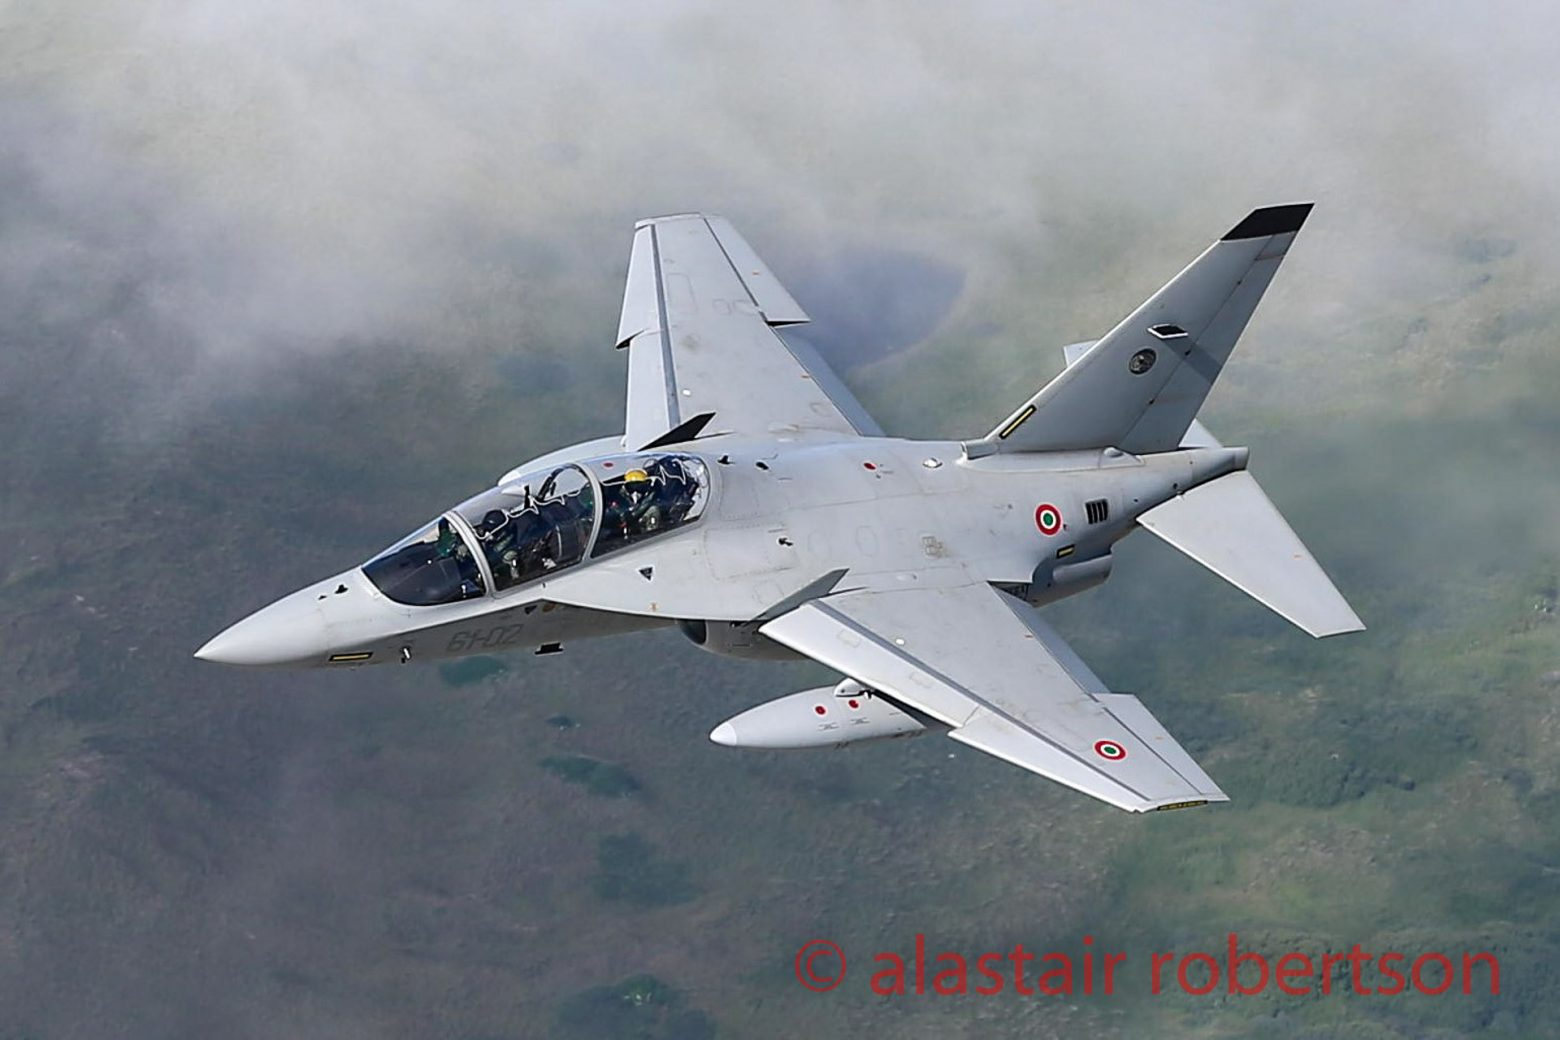 Italian Air Force Alenia Aermacchi M-346 Master 2